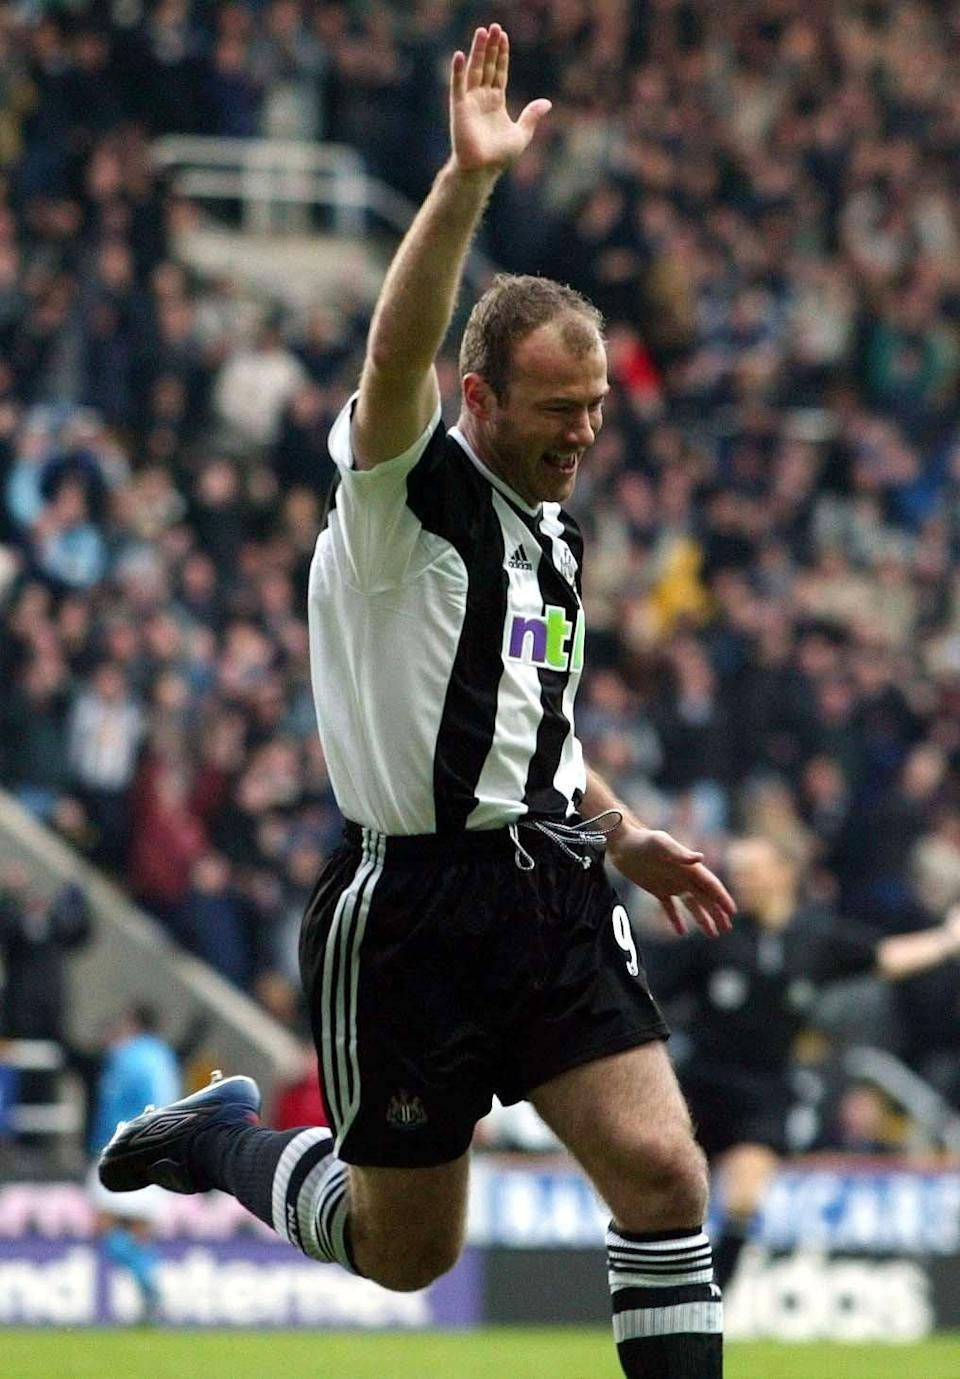 Newcastle United's Alan Shearer celebrates scoring the opening goal against Manchester City during their Barclaycard Premiership match at St James Park, Newcastle. THIS PICTURE CAN ONLY BE USED WITHIN THE CONTEXT OF AN EDITORIAL FEATURE. NO WEBSITE/INTERNET USE UNLESS SITE IS REGISTERED WITH FOOTBALL ASSOCIATION PREMIER LEAGUE.   (Photo by Owen Humphreys - PA Images/PA Images via Getty Images)